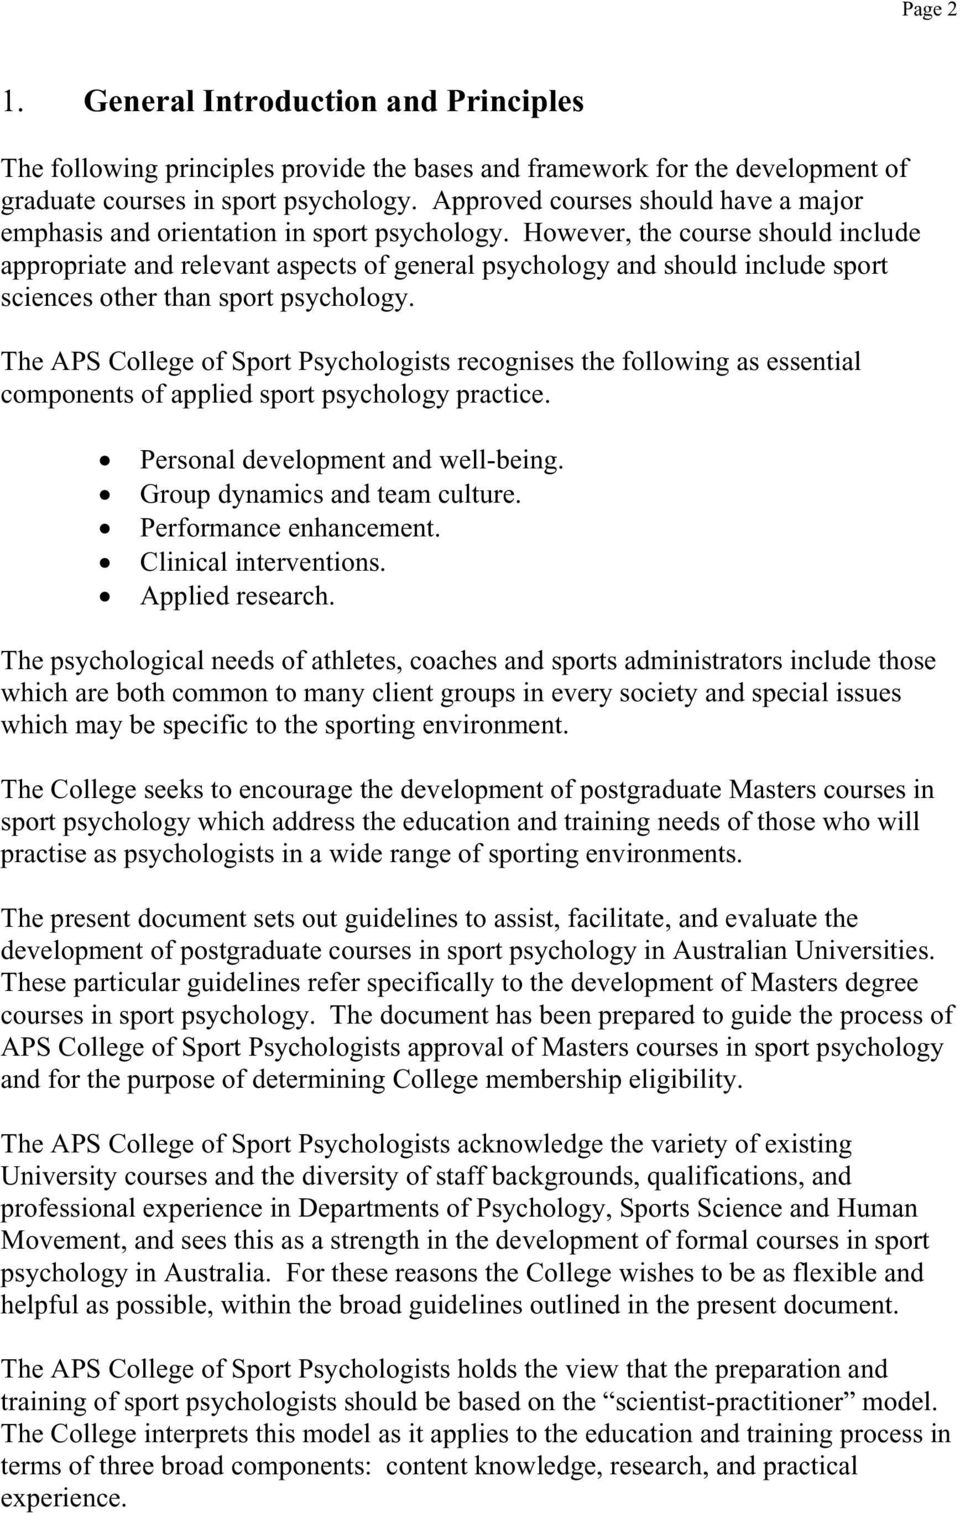 However, the course should include appropriate and relevant aspects of general psychology and should include sport sciences other than sport psychology.